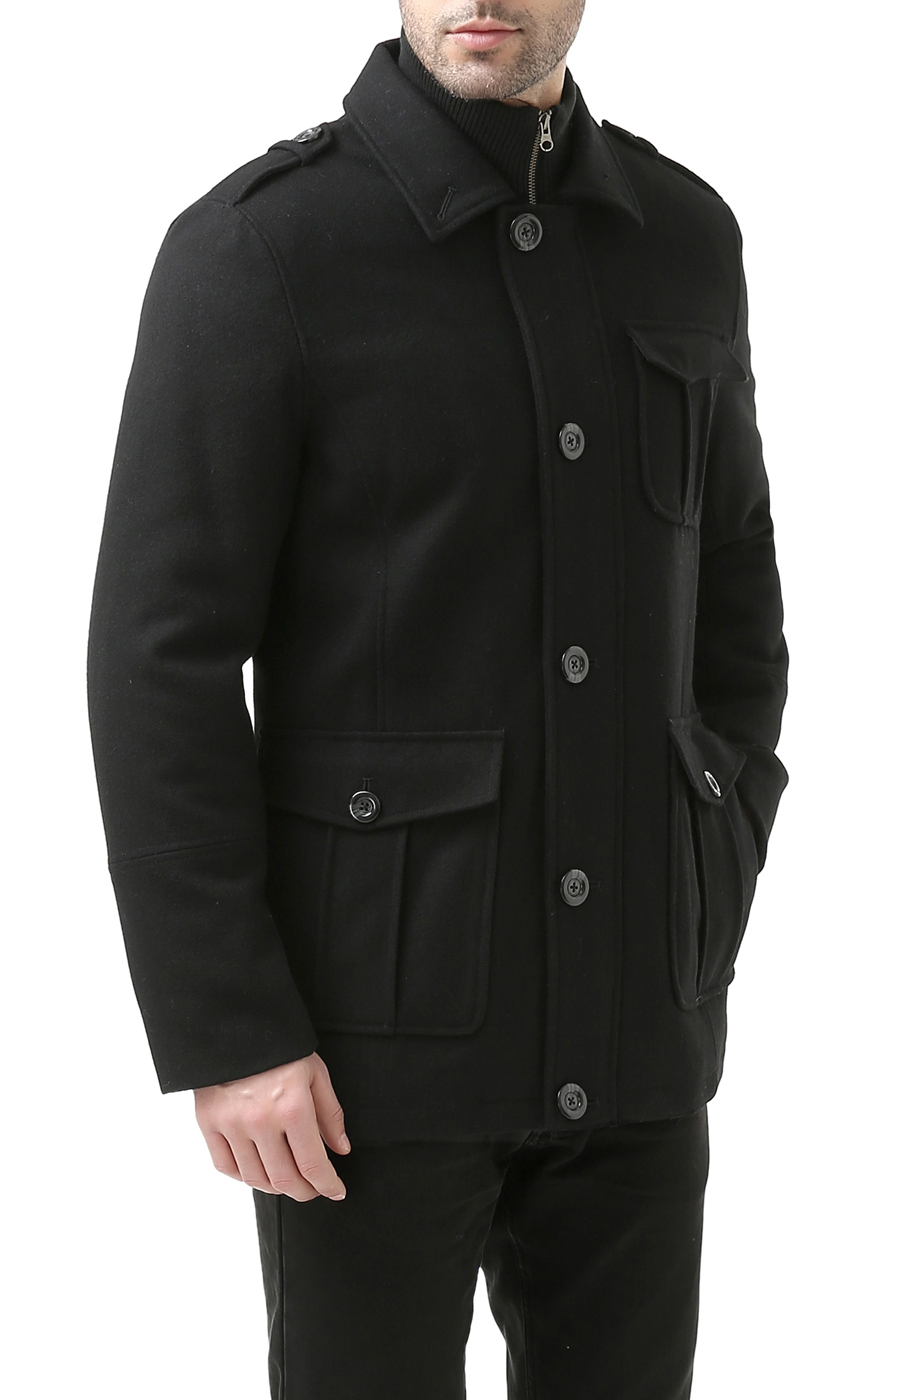 BGSD Men's 'Harrison' Wool Blend Knit Collar Car Coat by